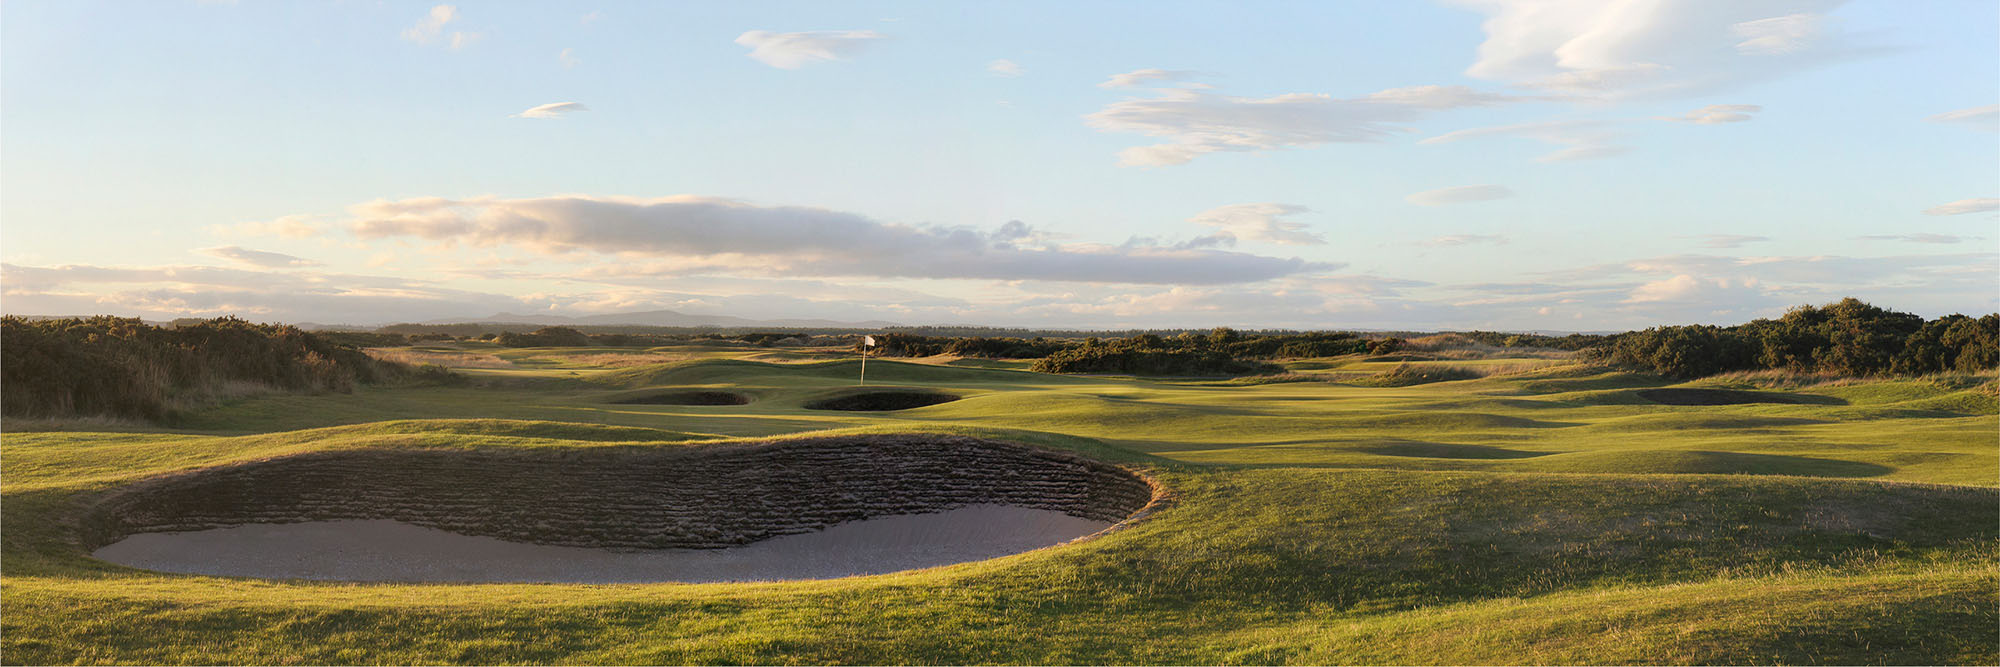 Golf Course Image - St Andrews New Course No. 7